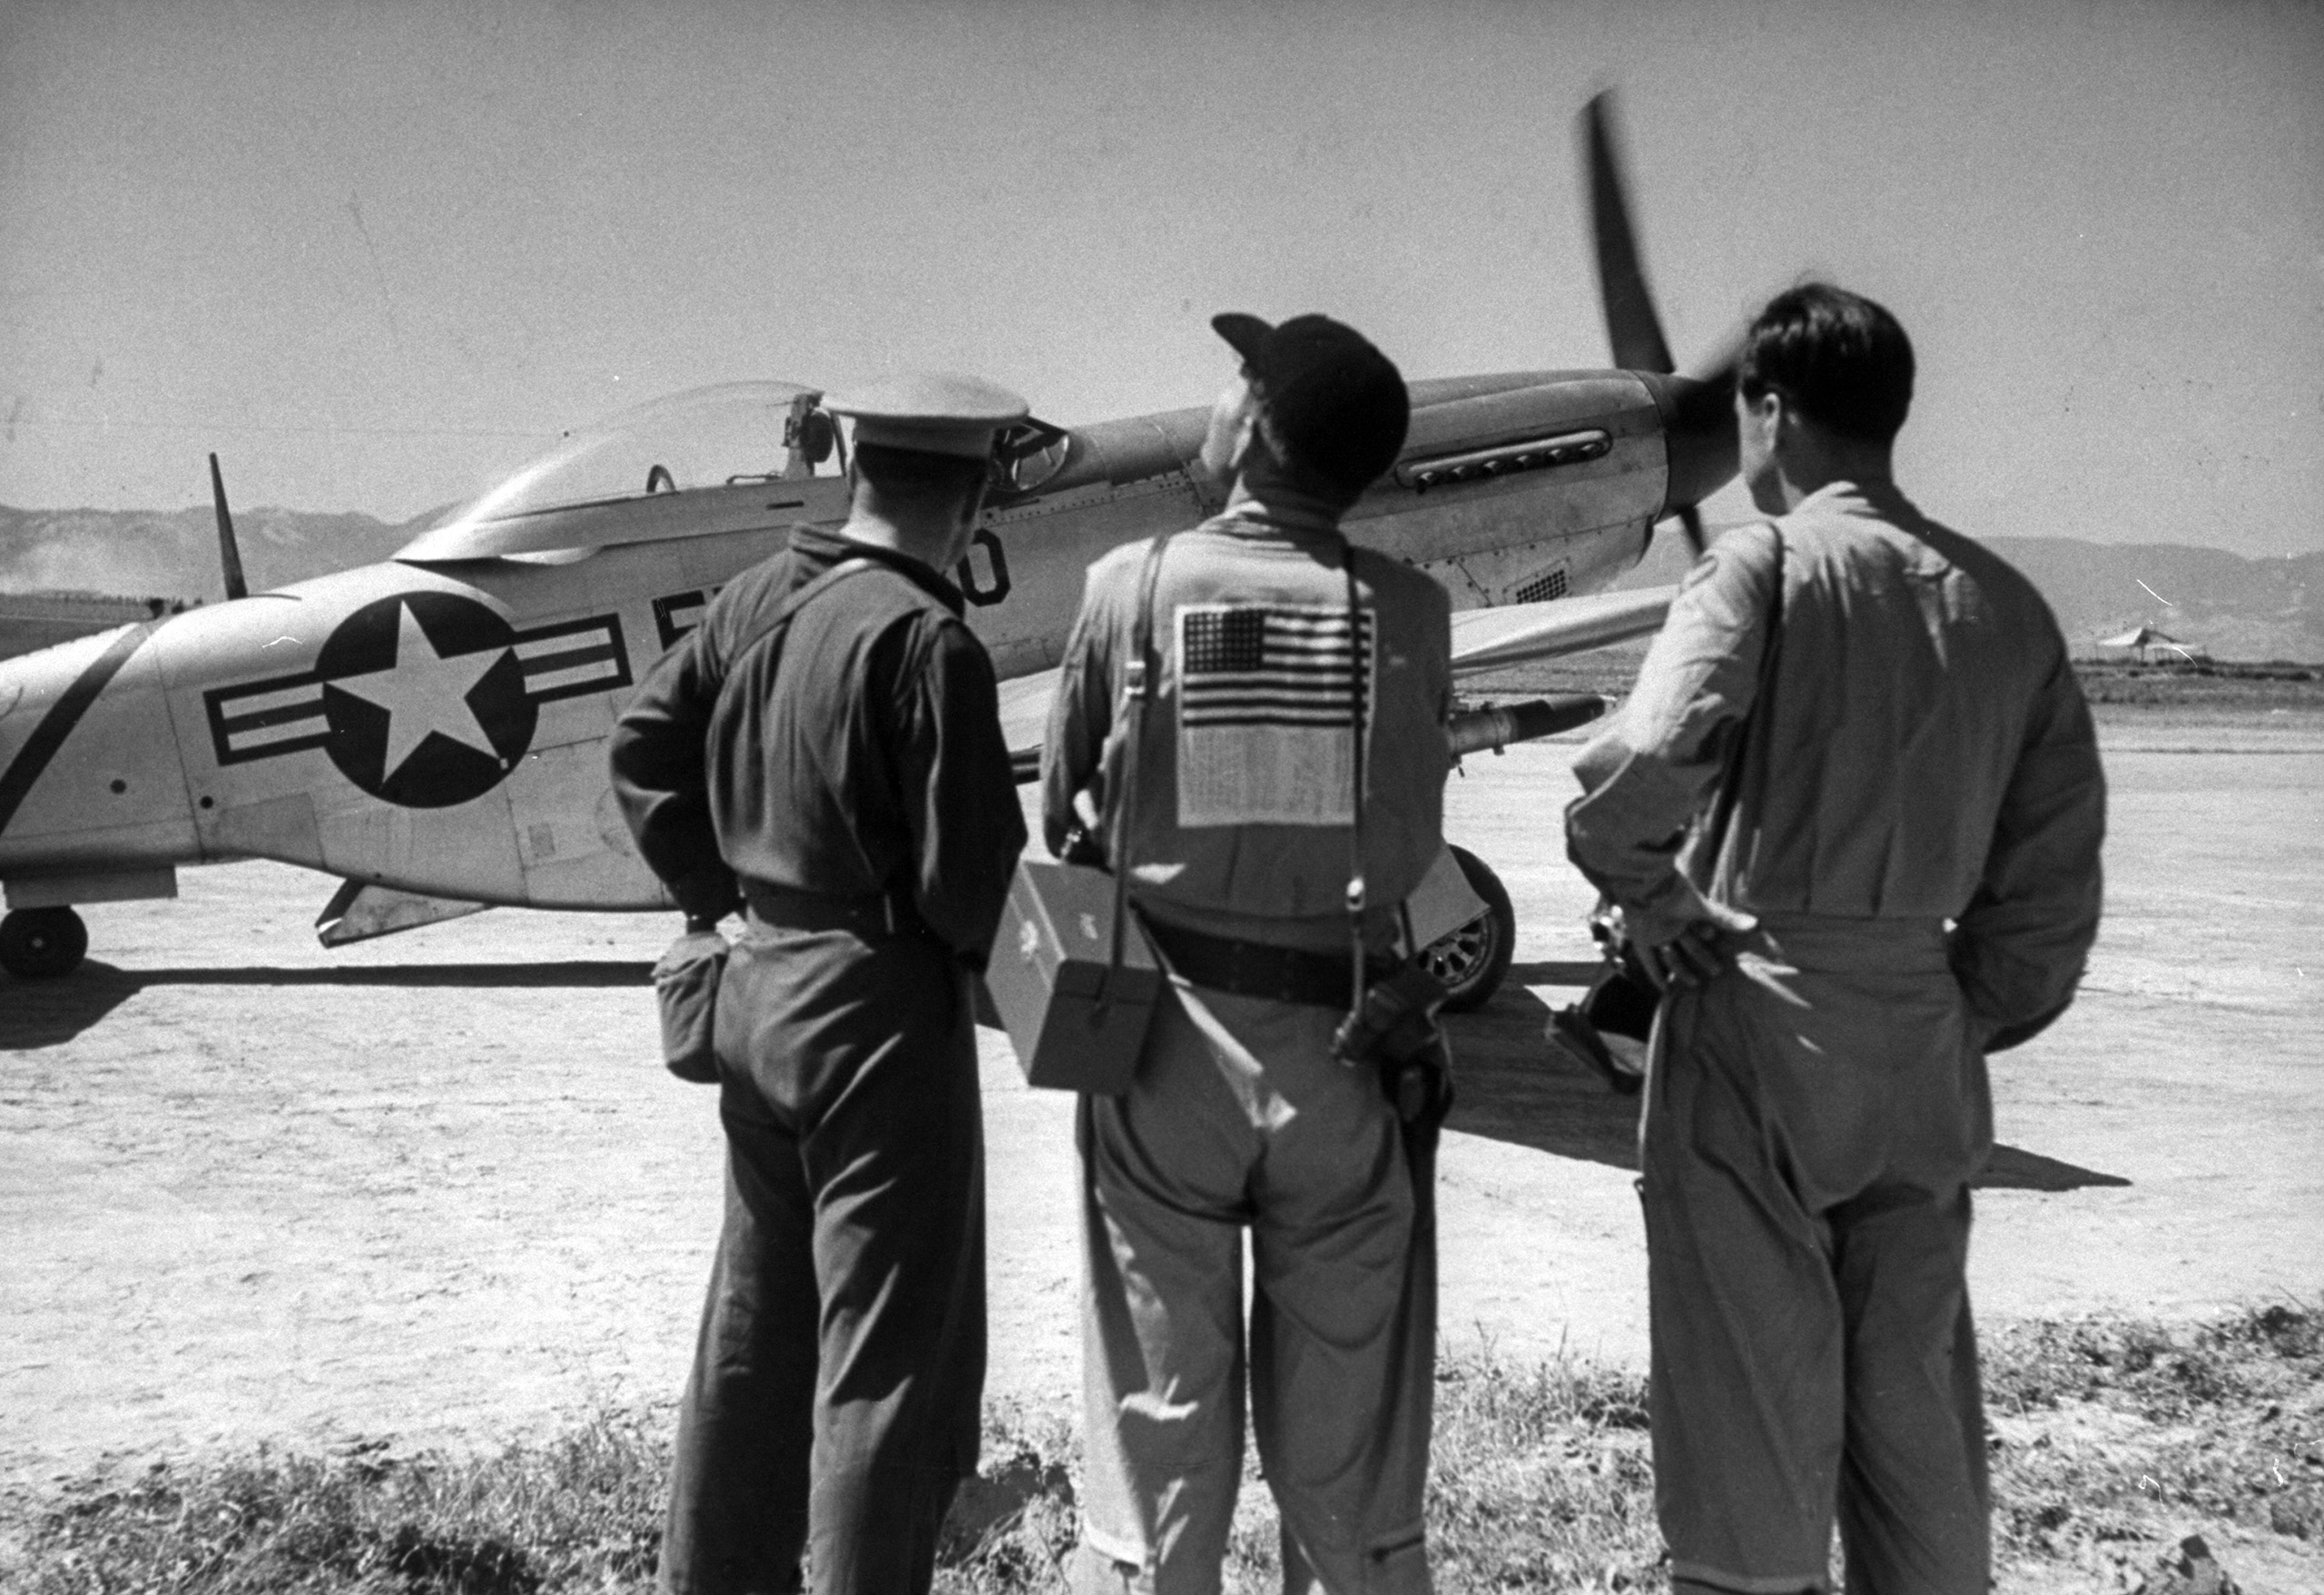 <b>Caption from LIFE.</b> Indentification is worn by U.S. flyer at base. Sign, in Korean, asks help should he be shot down.